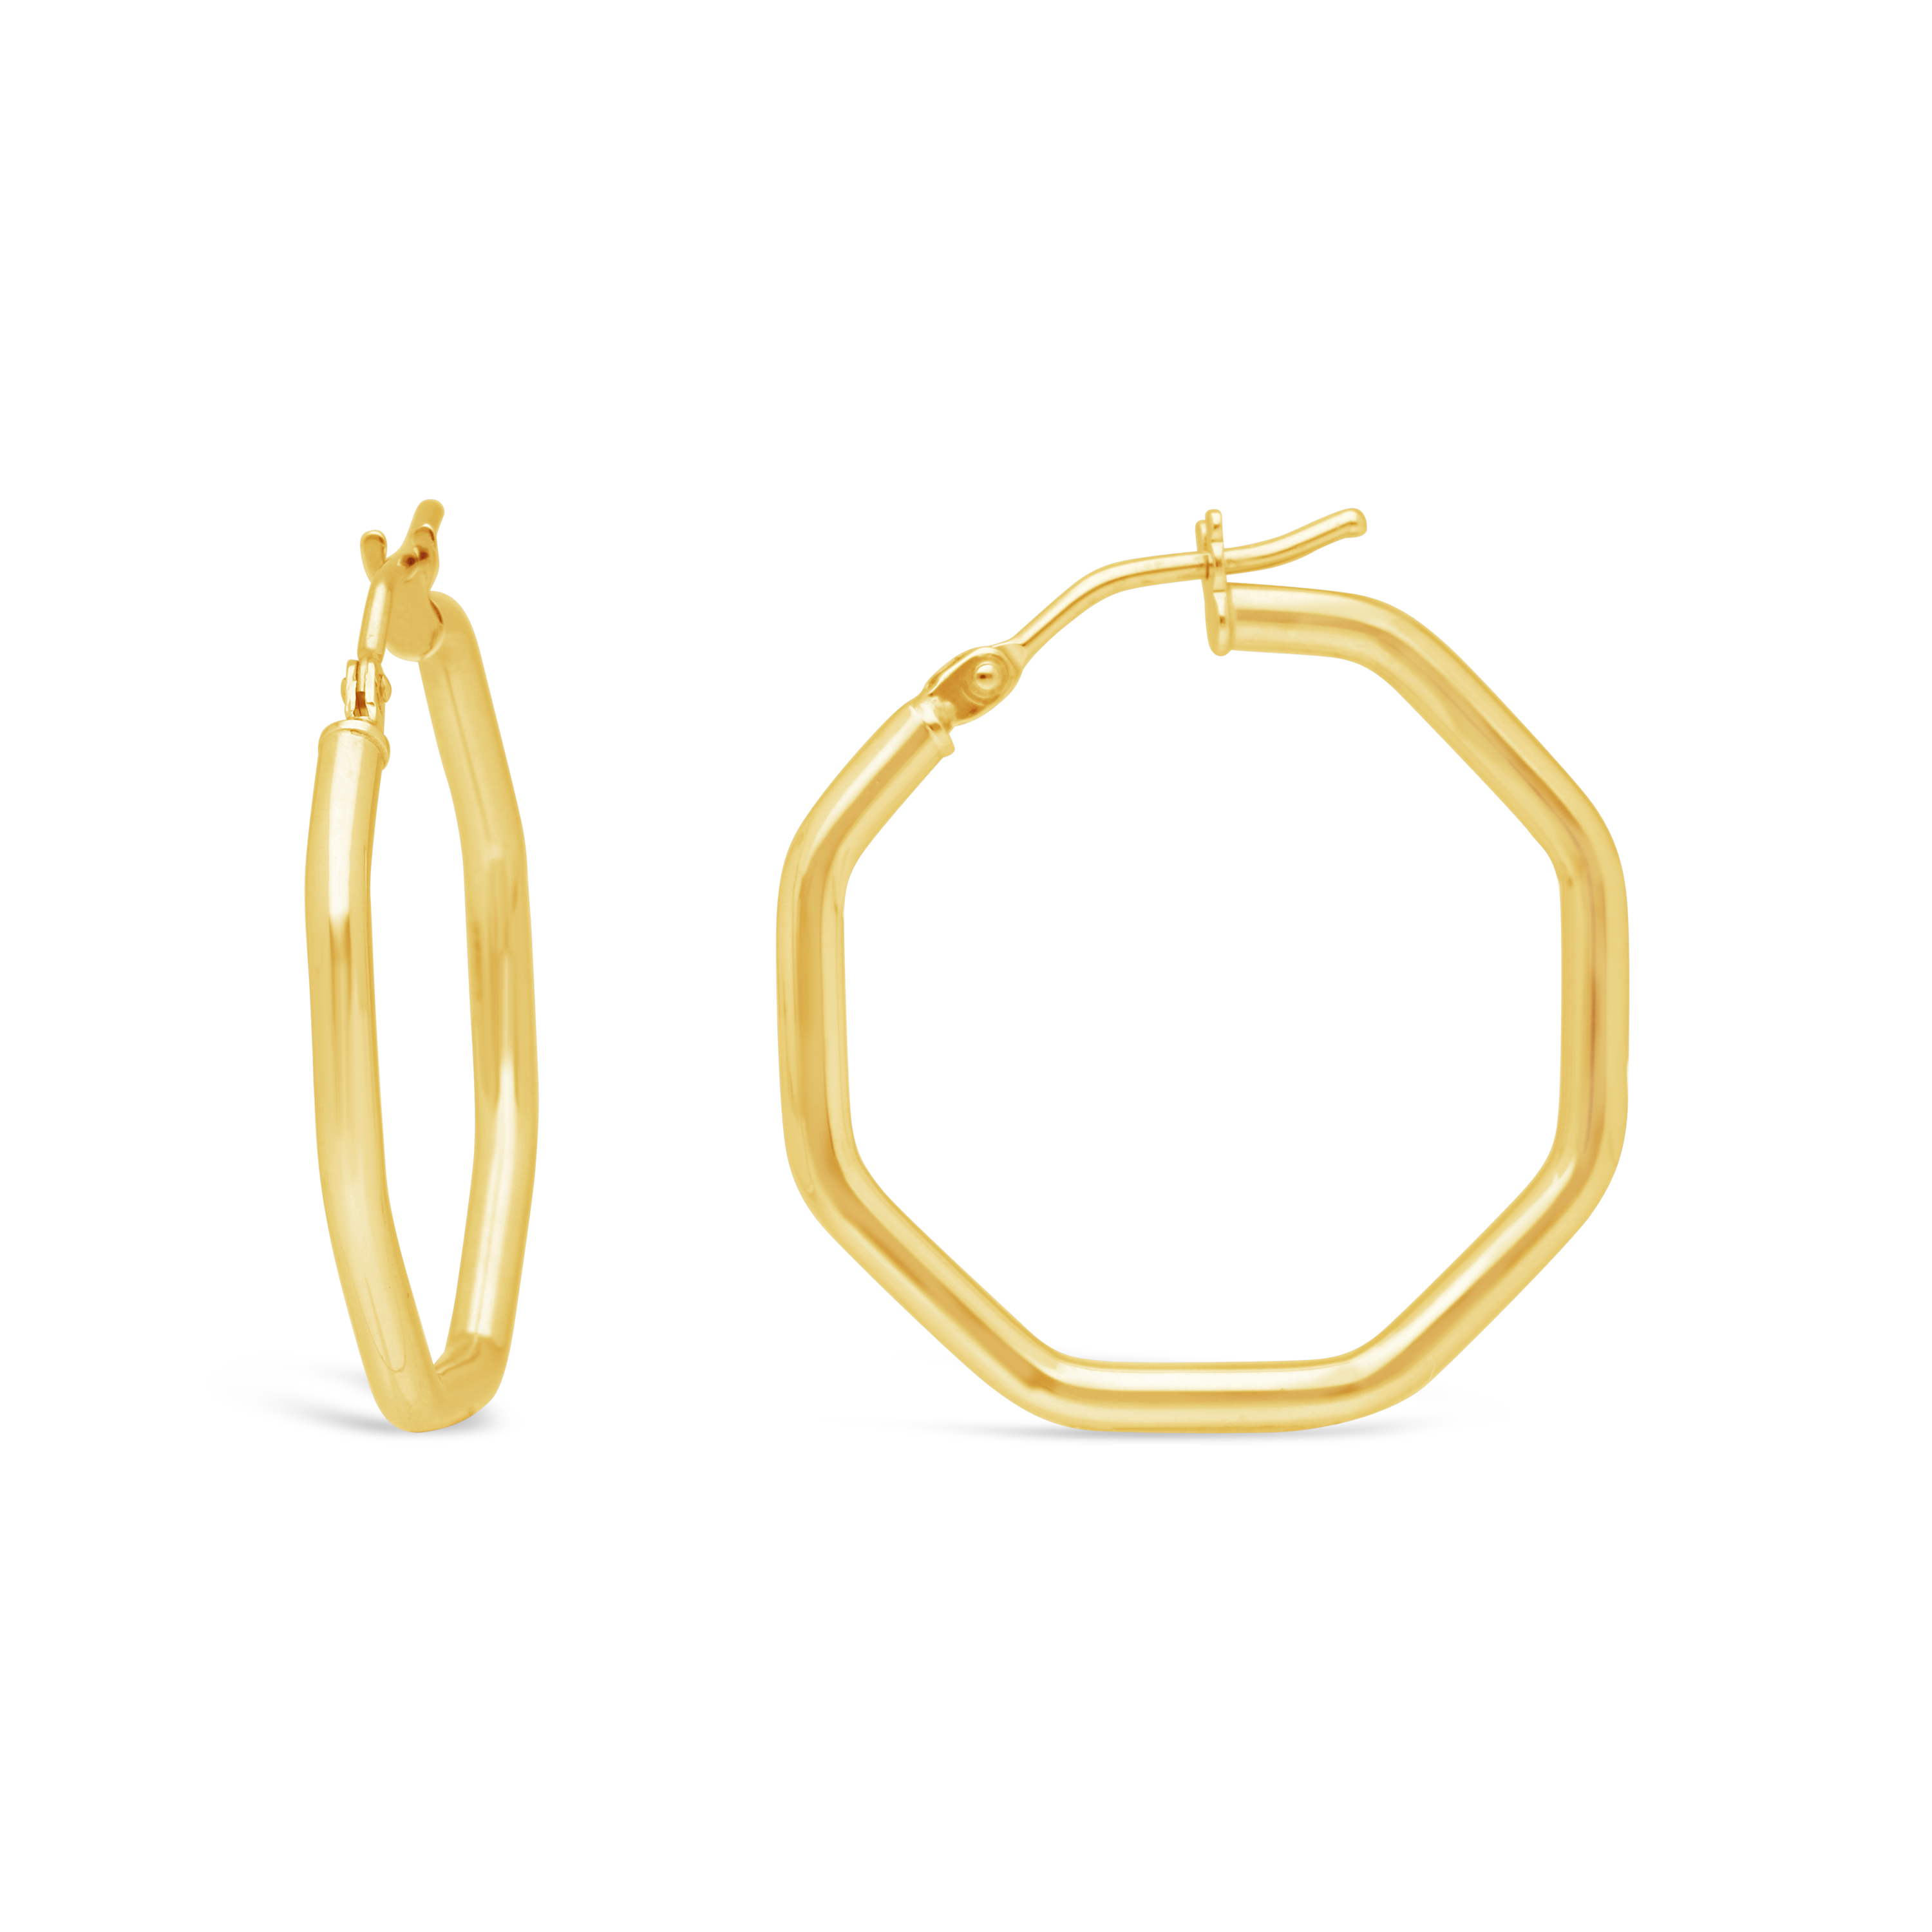 8b5face49d5e 9ct Gold Hoop Earrings - NWJ